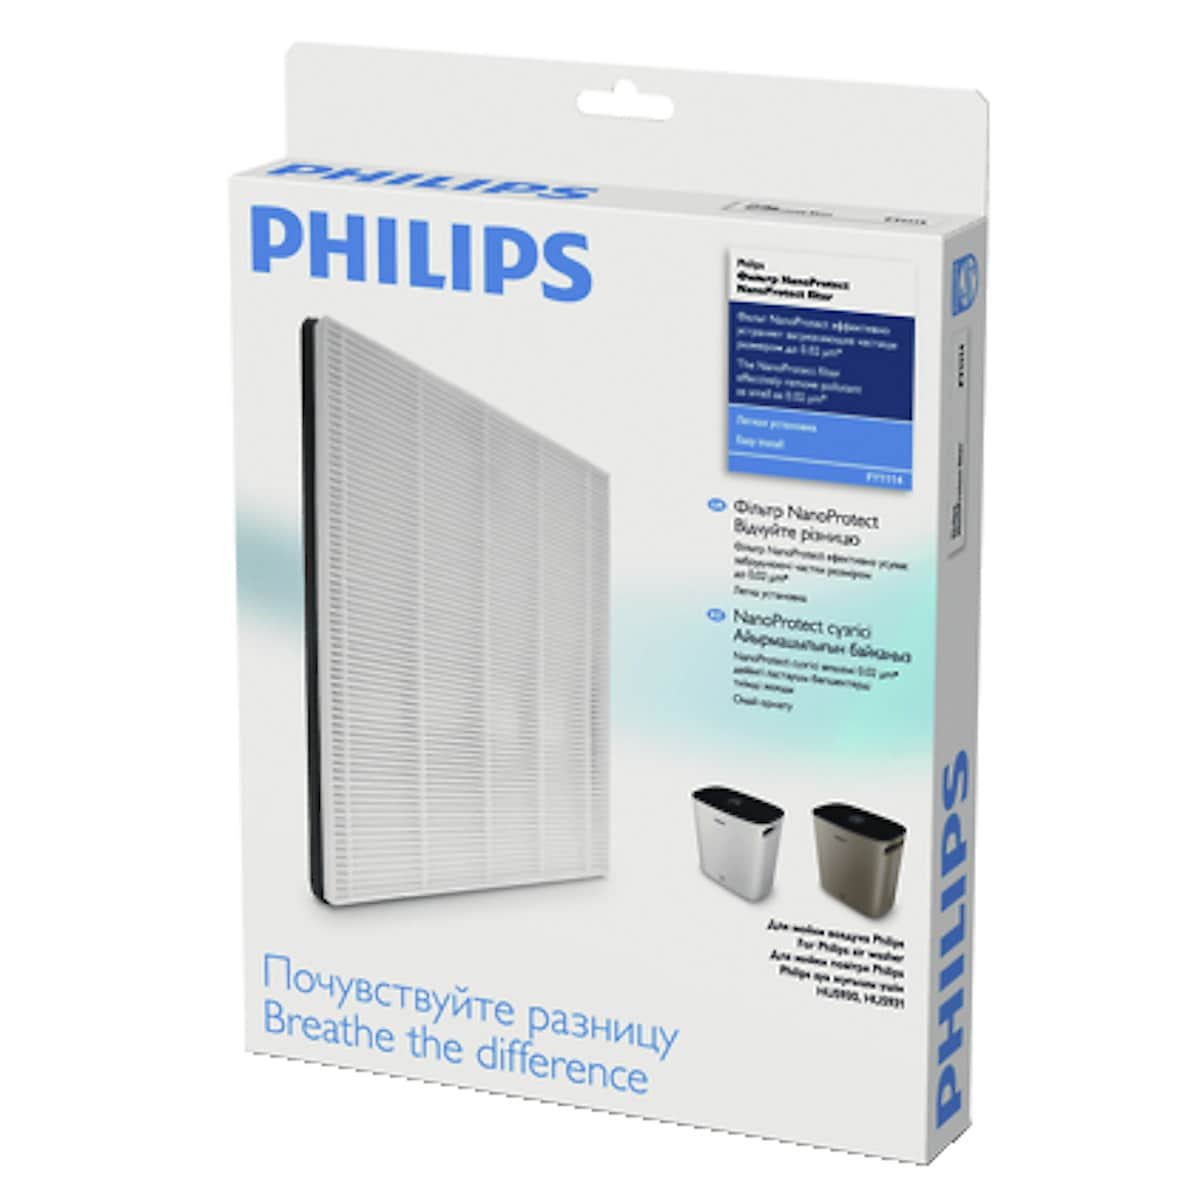 Philips FY1114/10 partikkelfilter til Philips HU5930